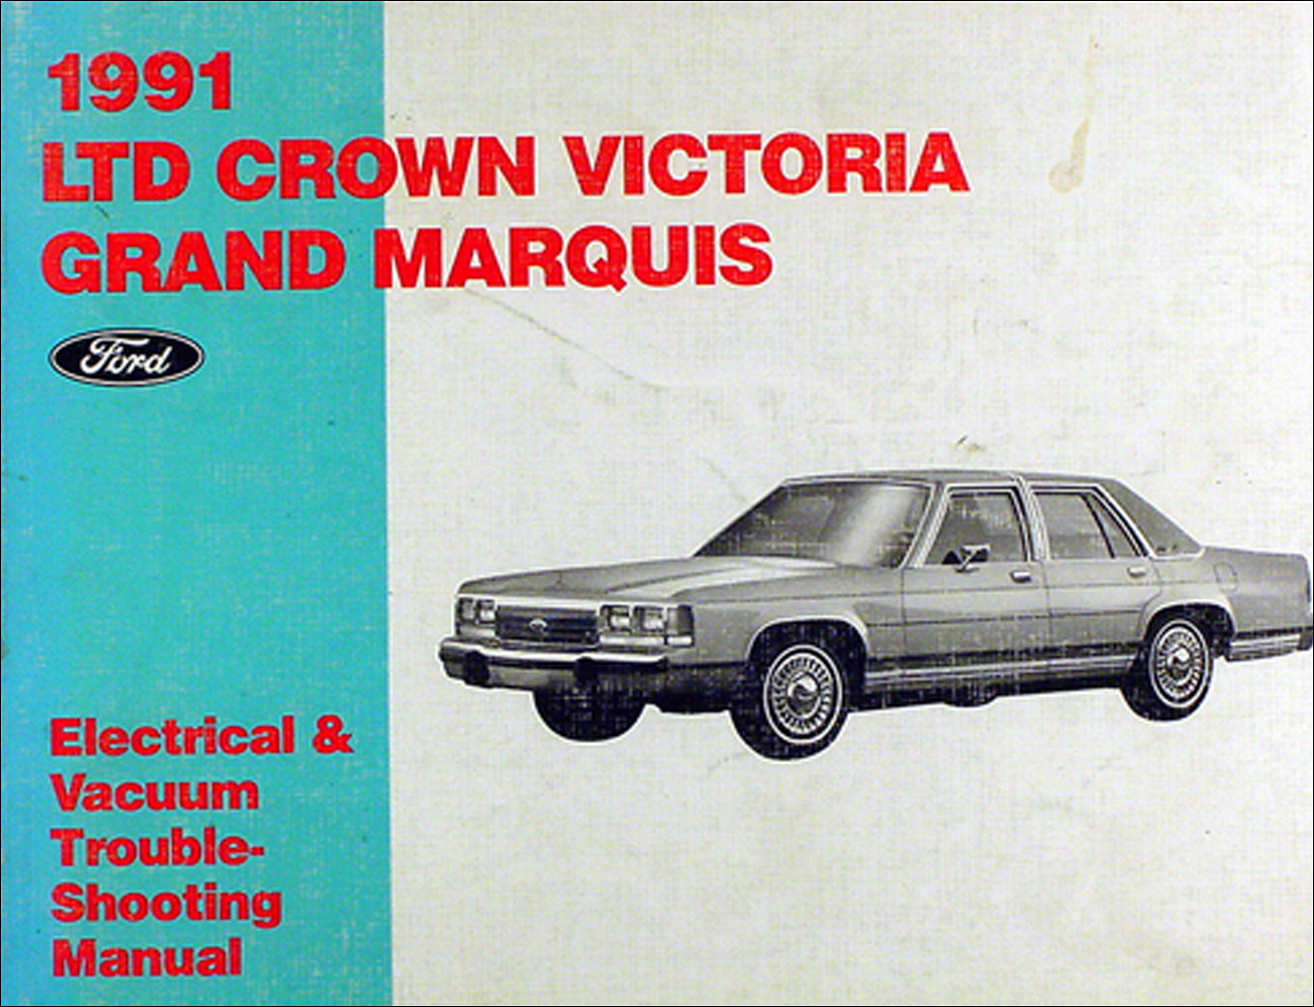 1991 Ford Crown Victoria Mercury Grand Marquis Electrical Troubleshooting Manual